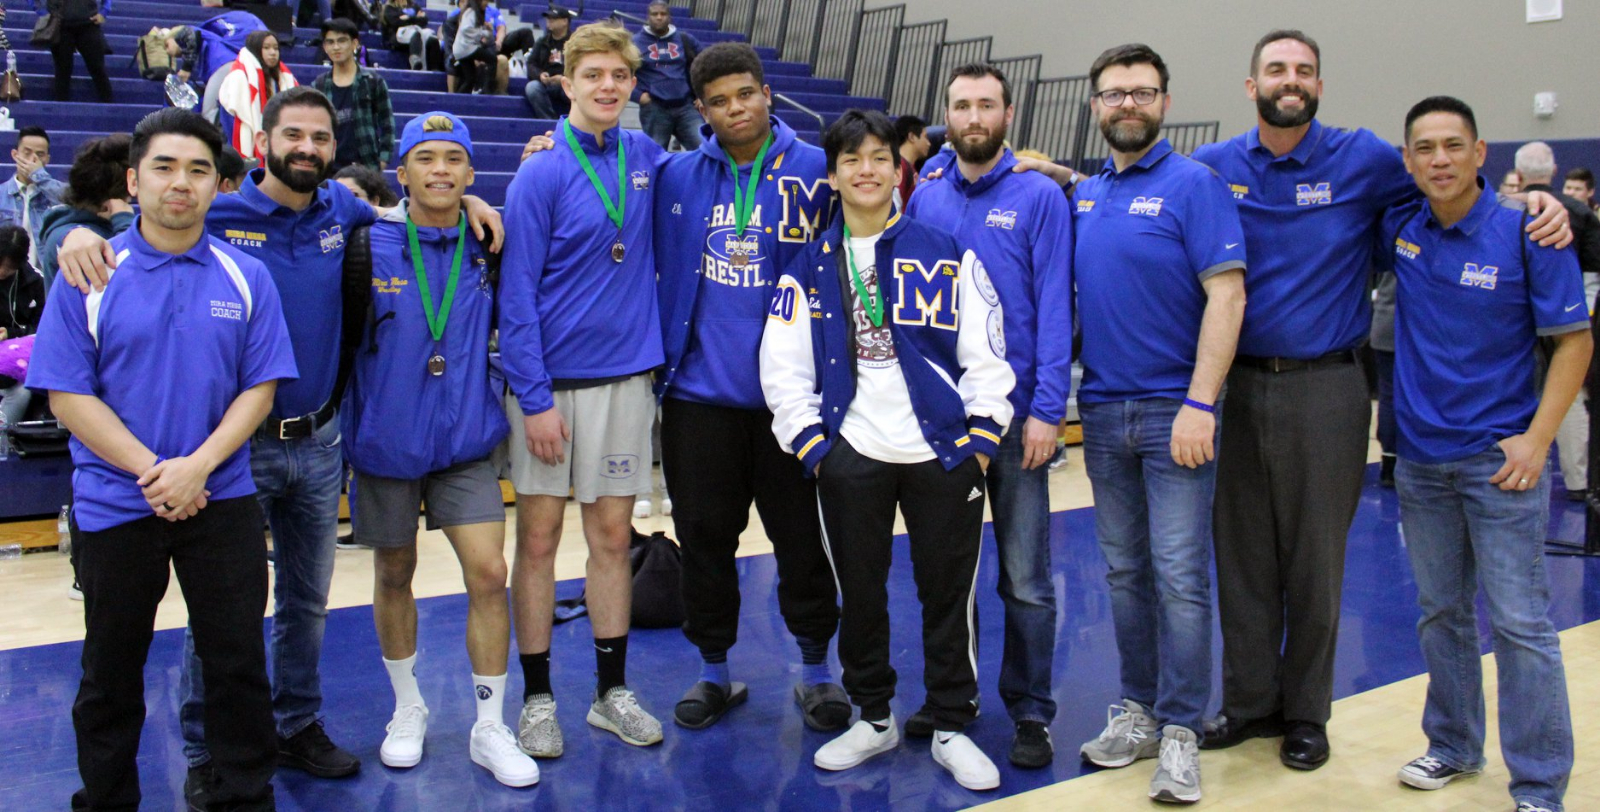 Wrestling Sends Record 5 Wrestlers to CIF State Meet